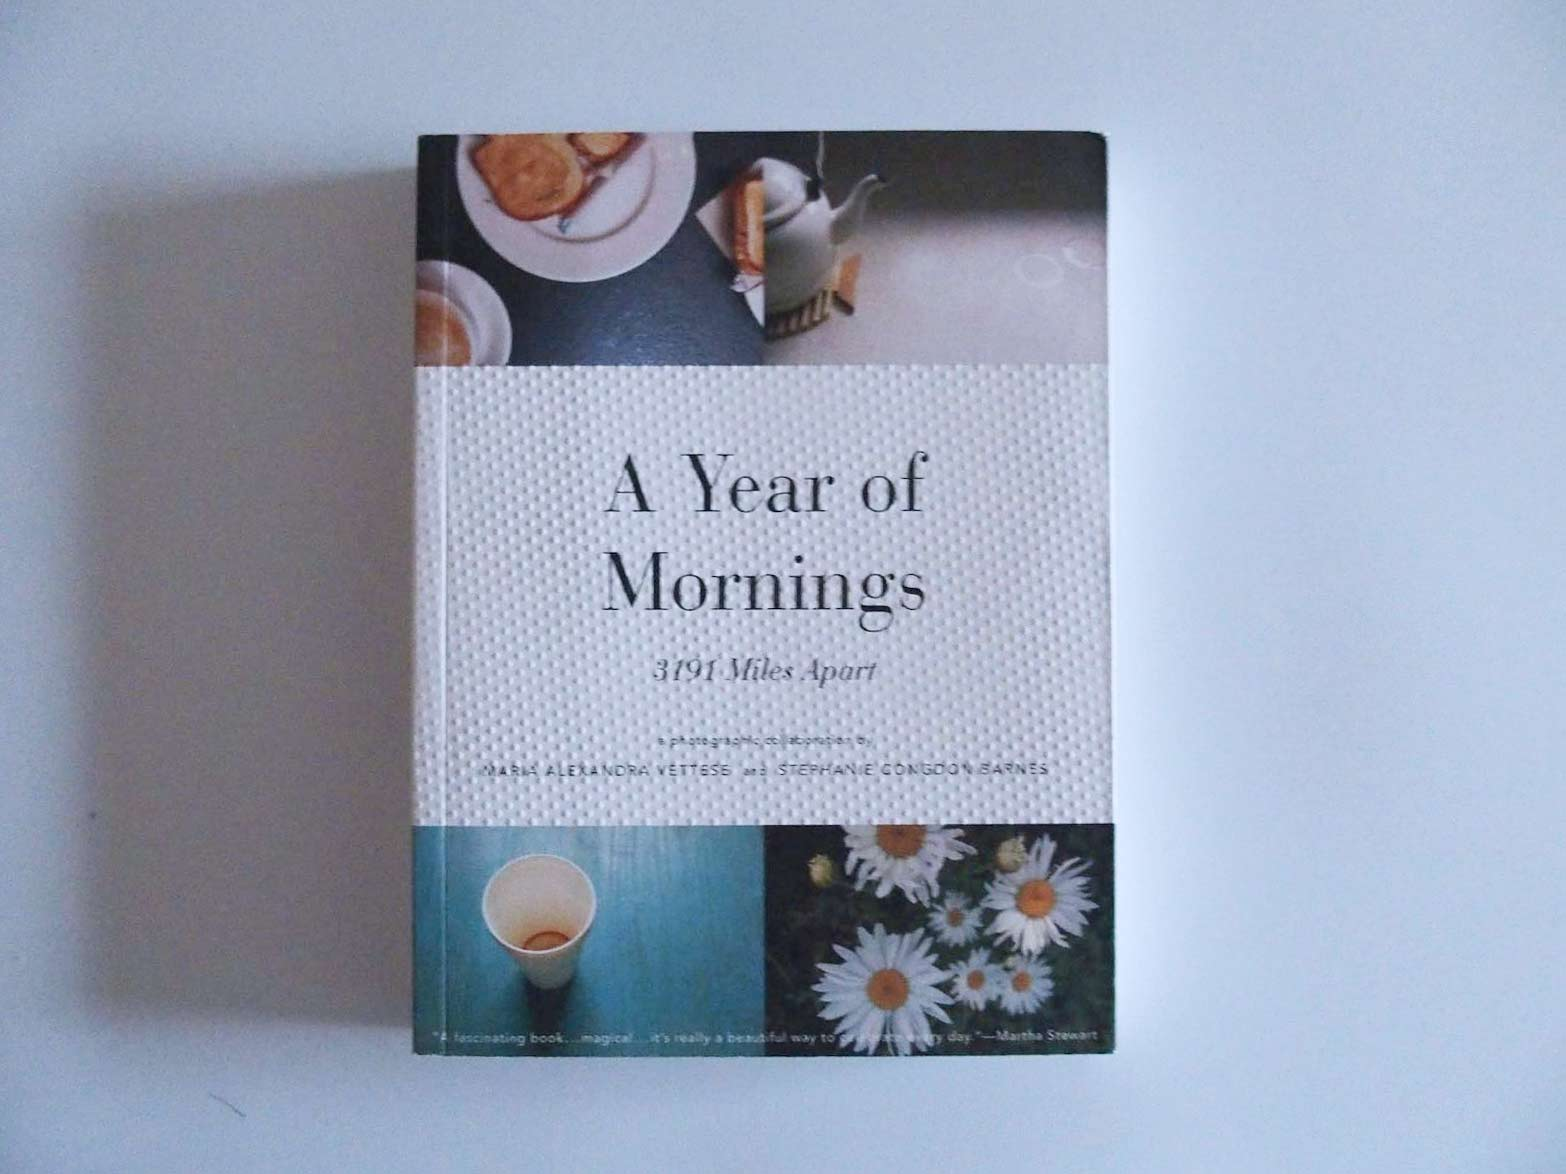 A Year of Mornings